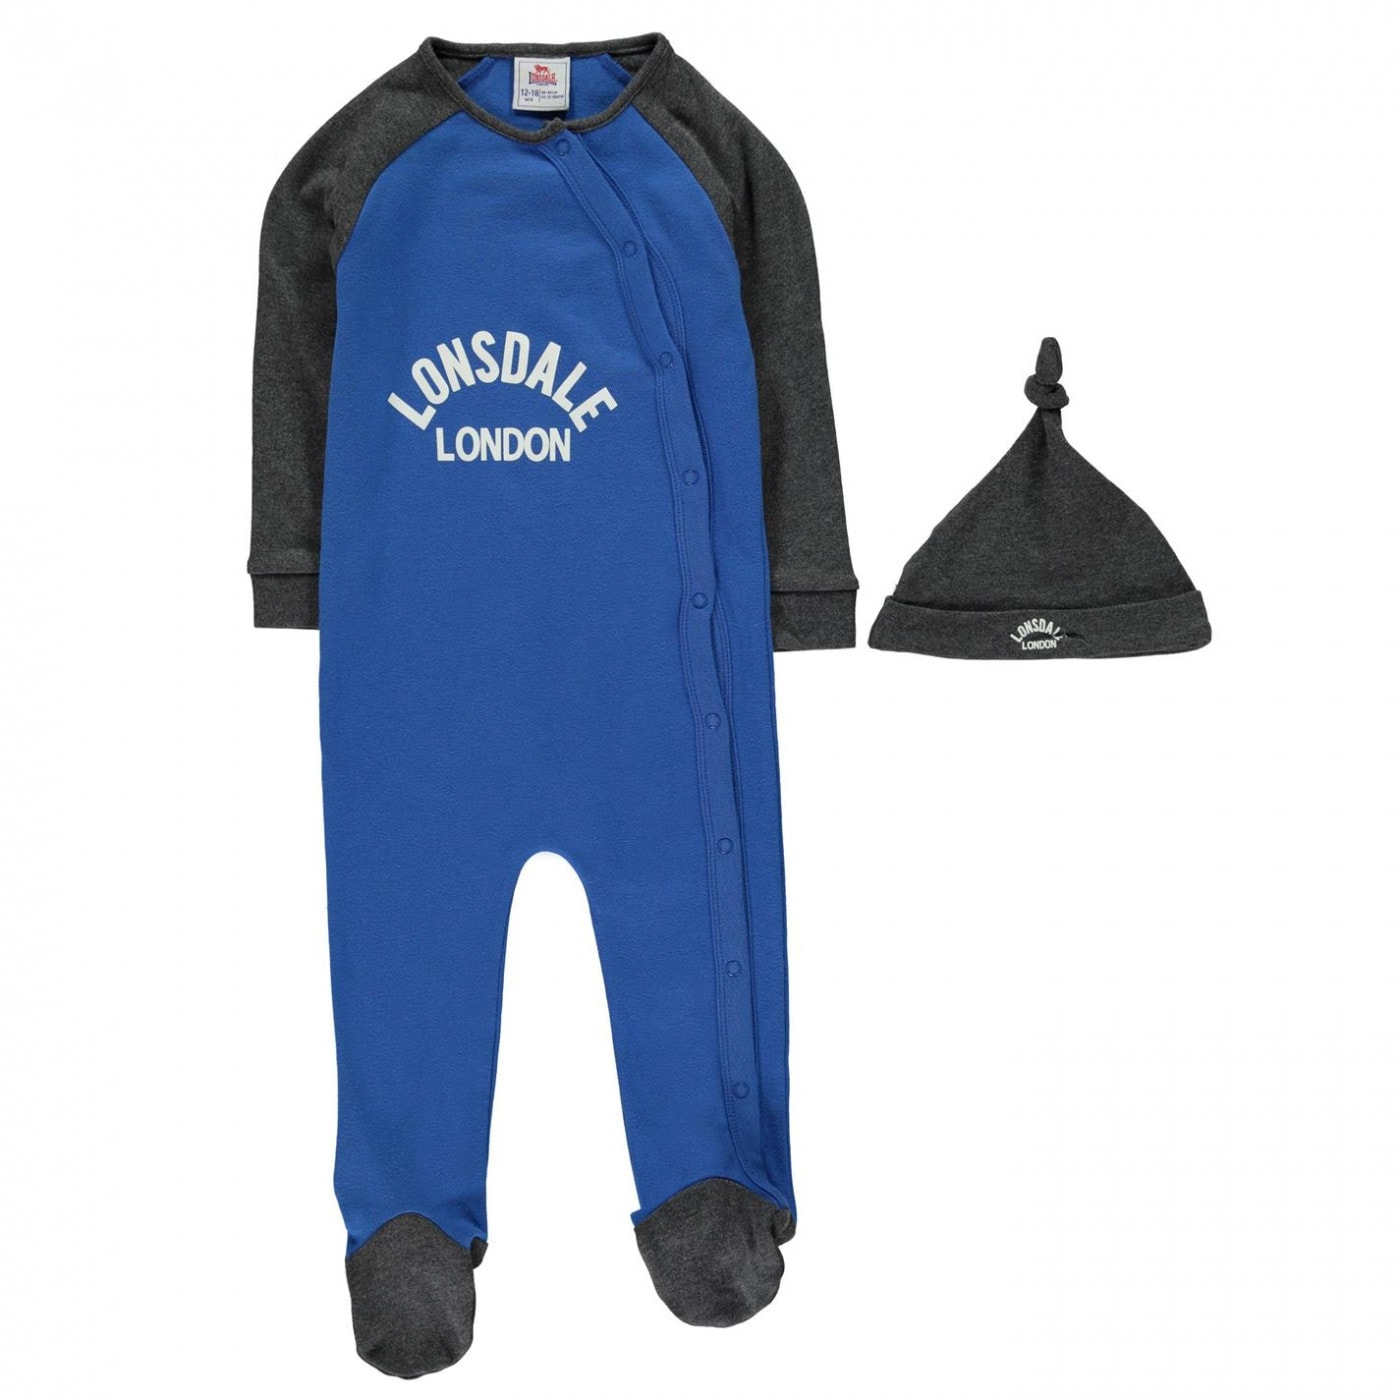 Lonsdale Sleep Suit Baby Boys